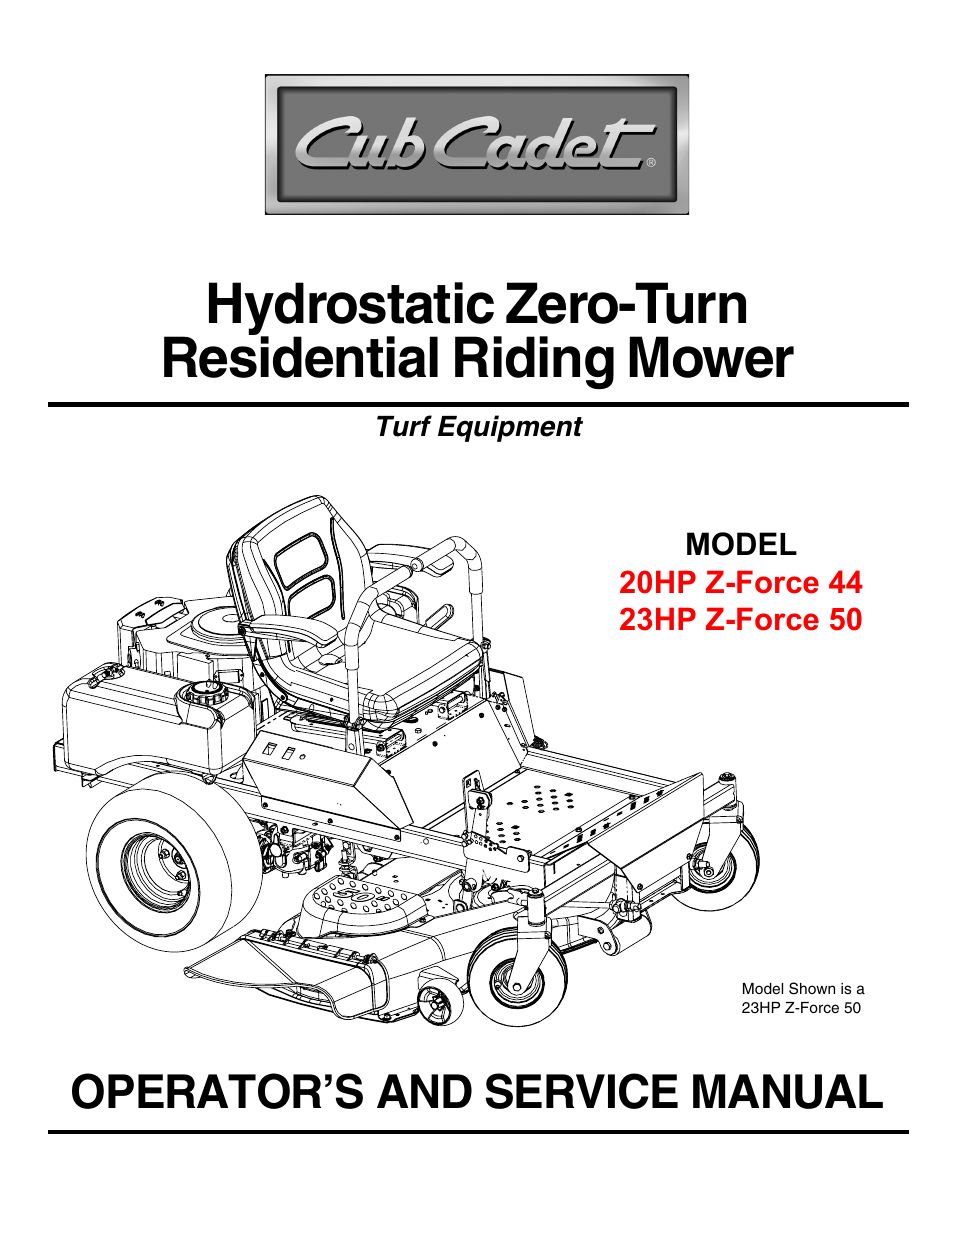 medium resolution of cub cadet 23hp z force 50 user manual 32 pages also for